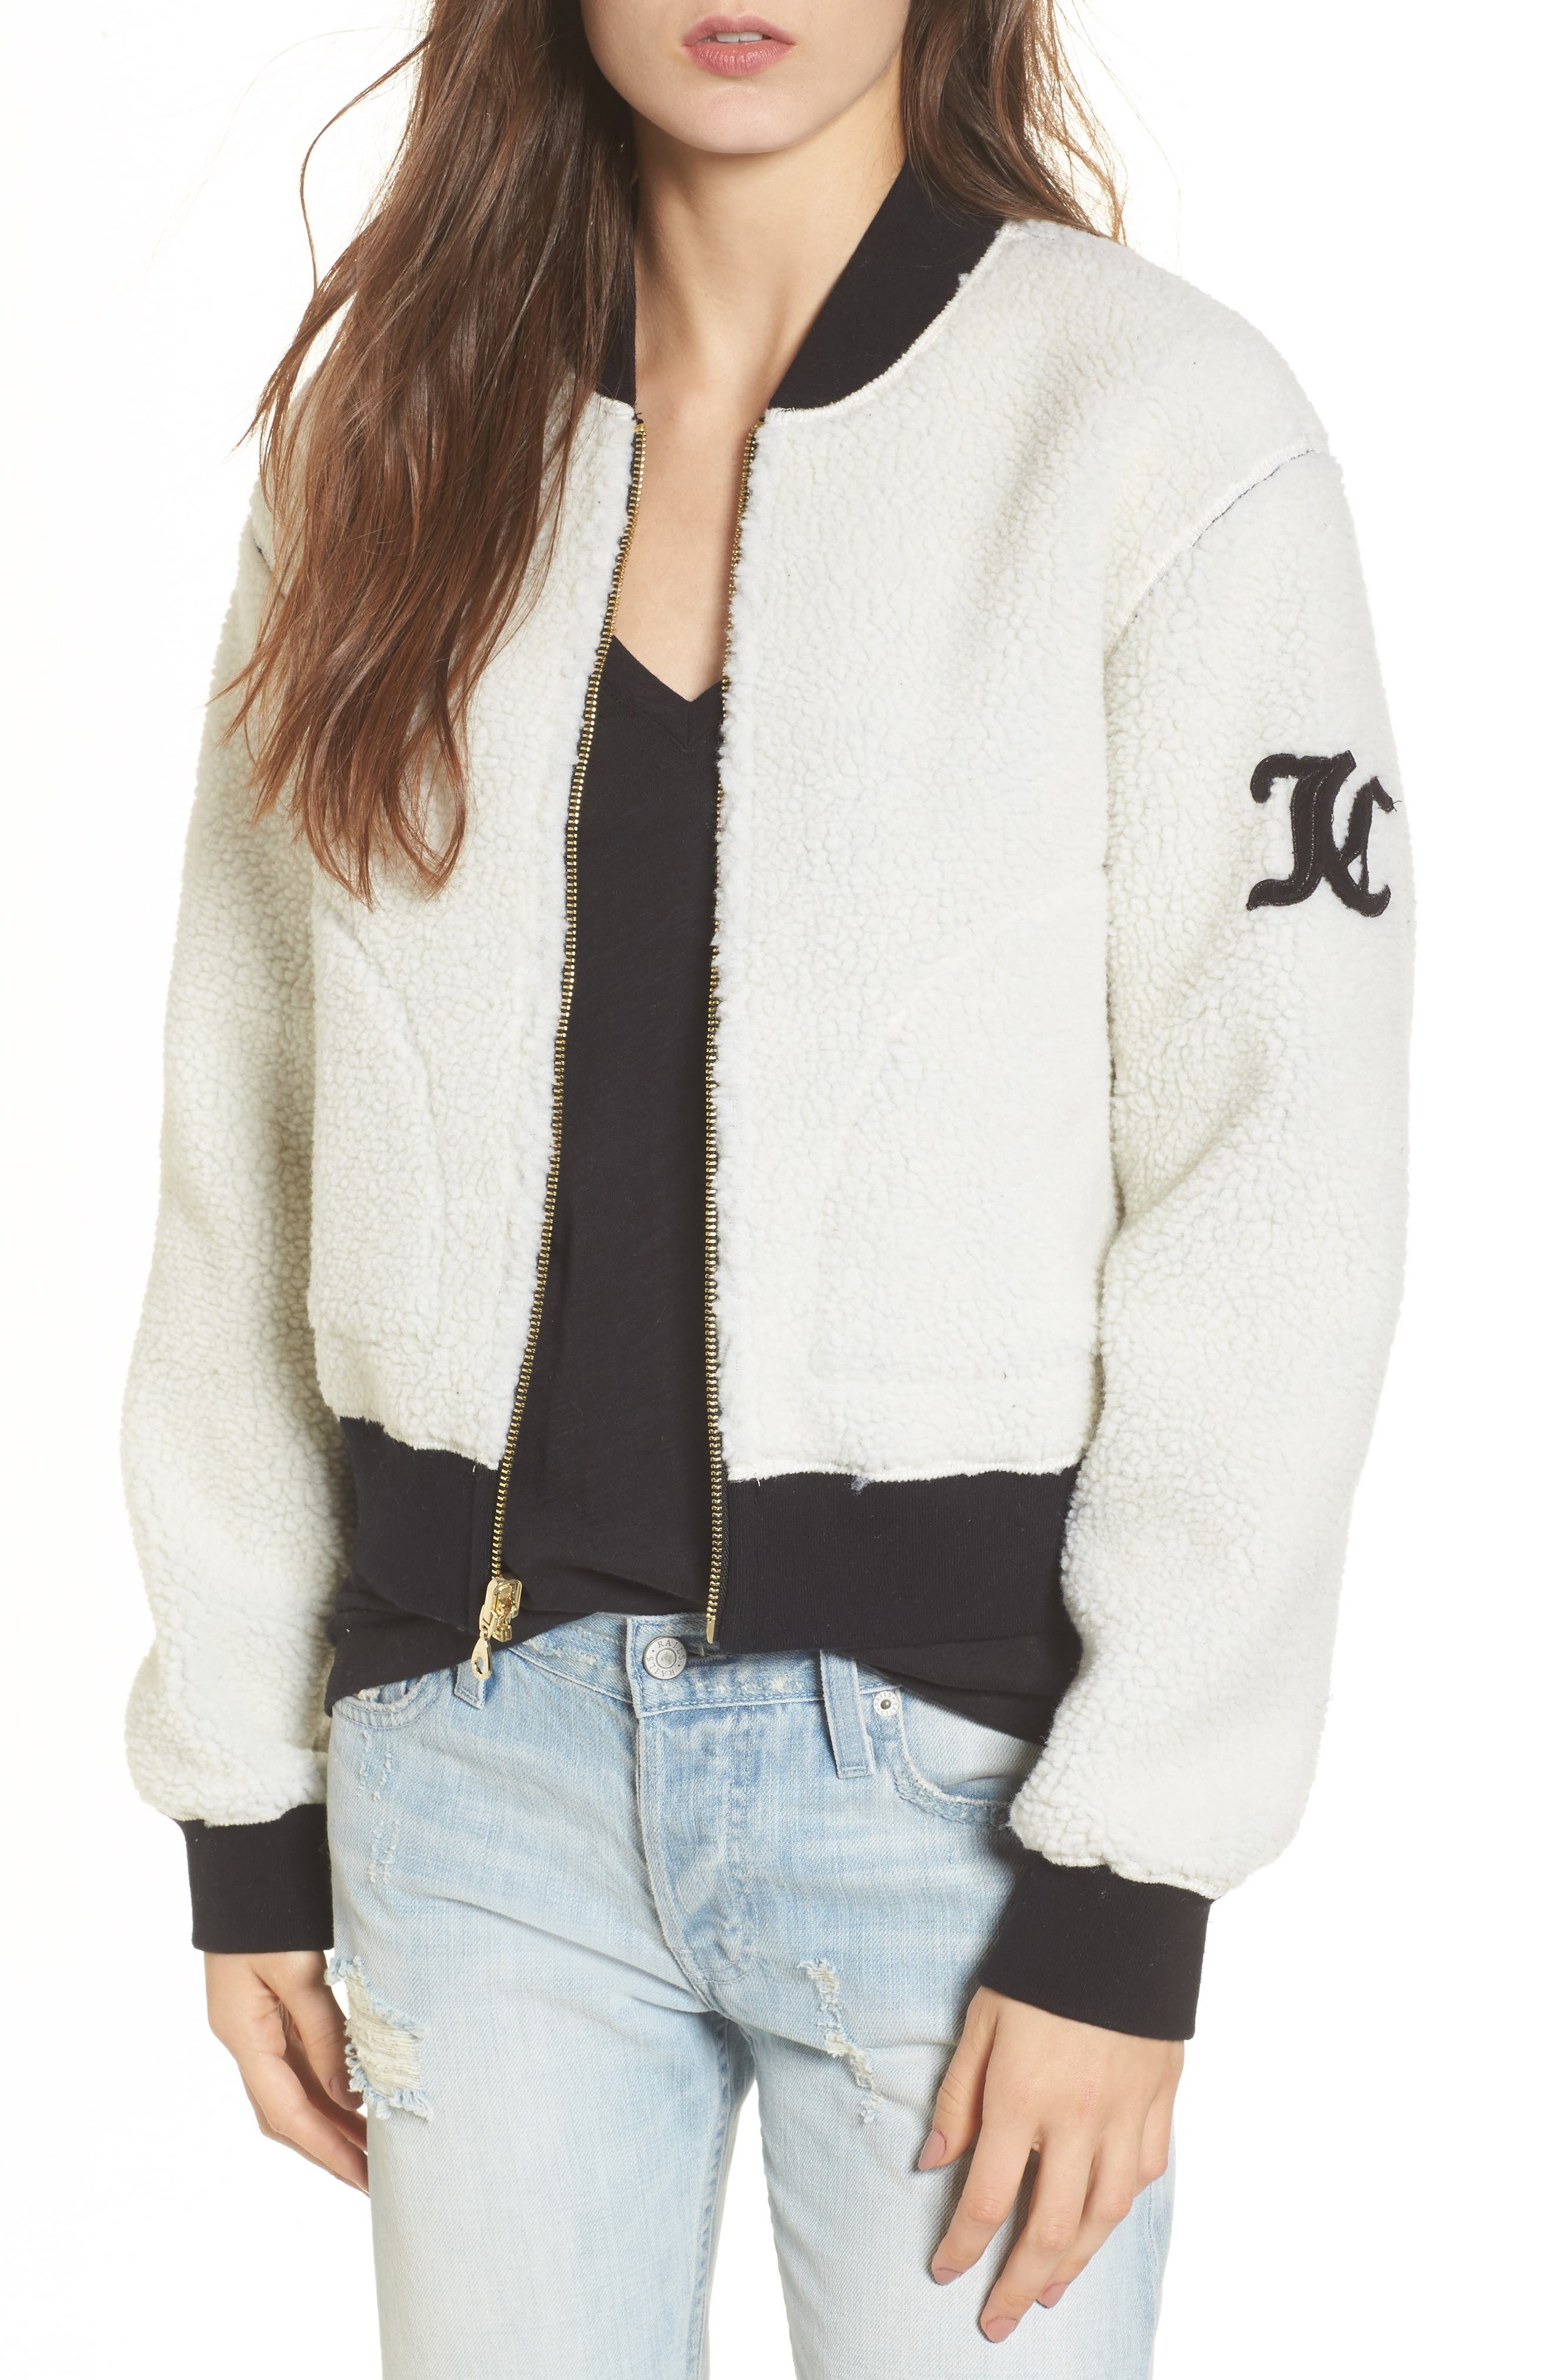 Alternate Image 1 Selected - Juicy Couture Reversible Track Jacket